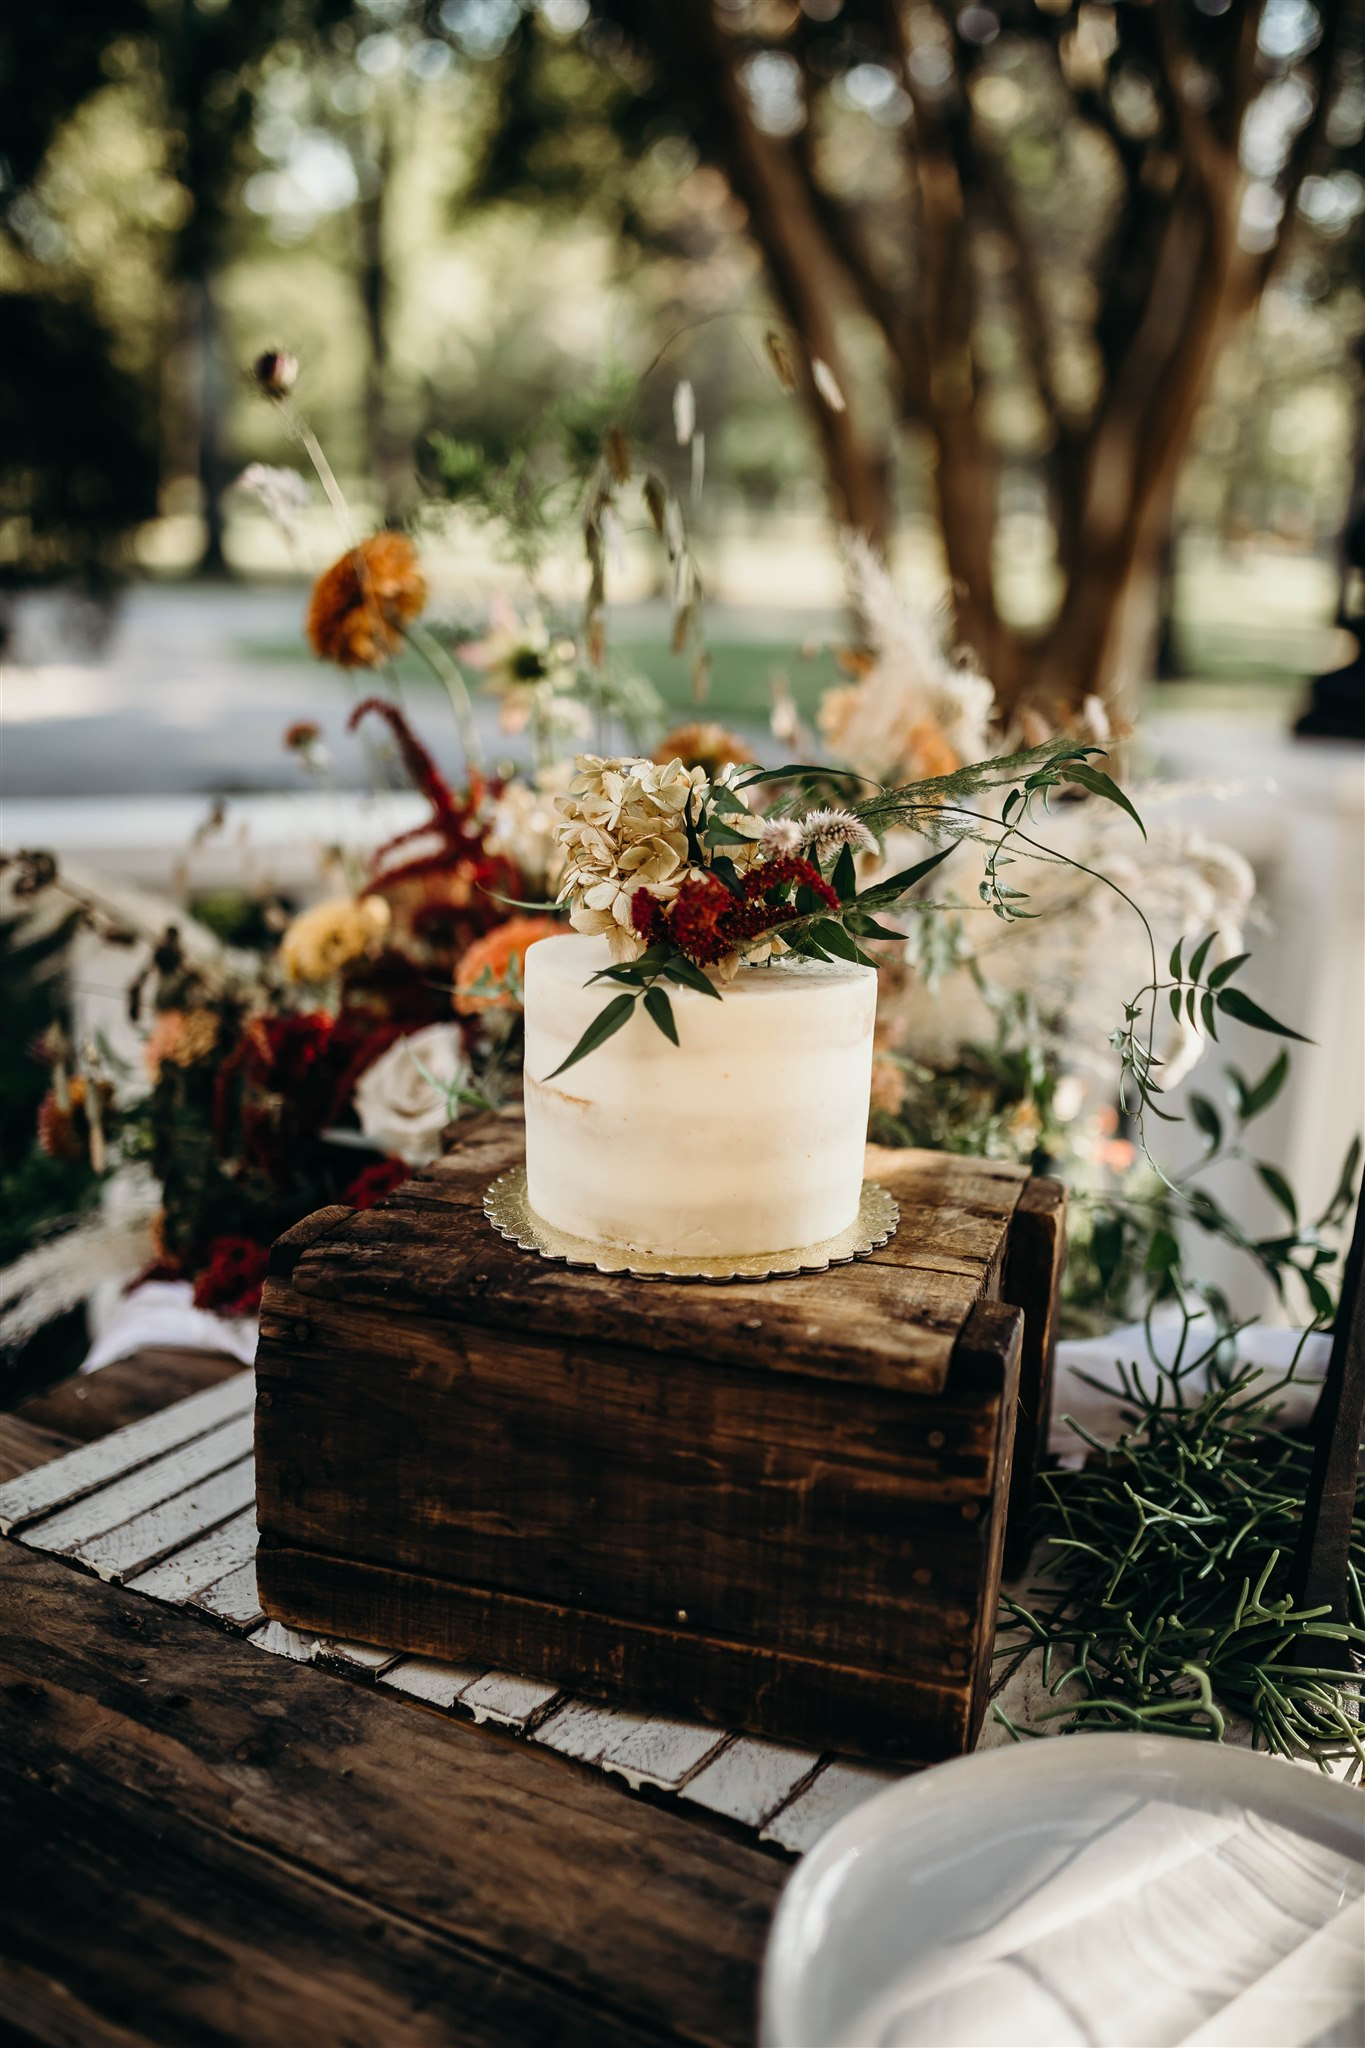 Simple Wedding Cake Design: Boho Winter Wedding Styled Shoot by Riley Gardner Photography featured on Nashville Bride Guide